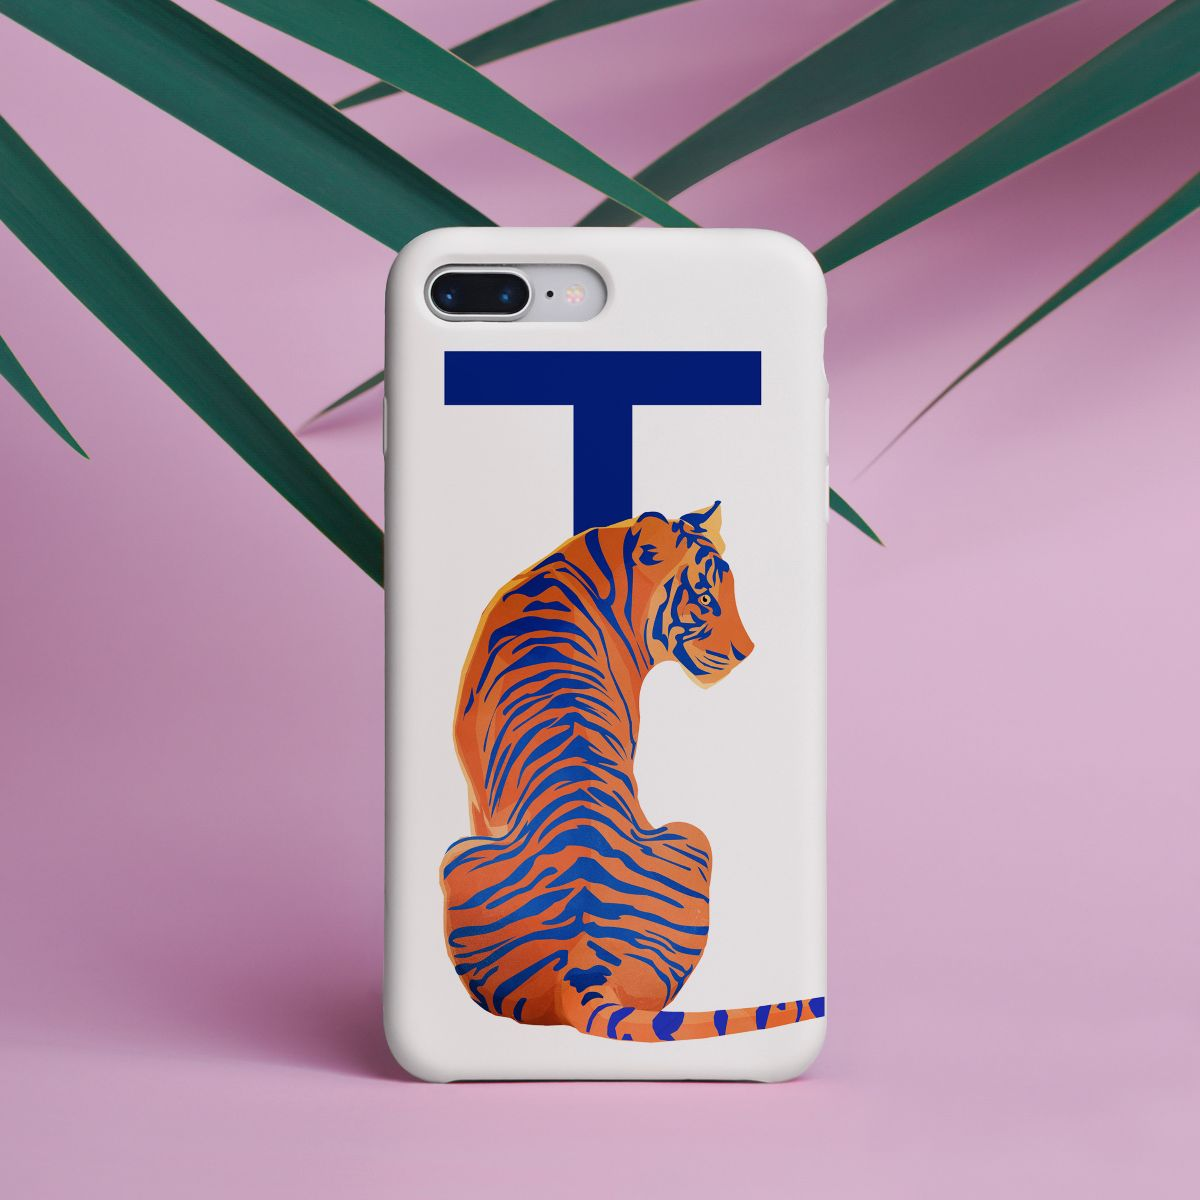 Goed Blauw: Alphabet T for Tiger - phone case